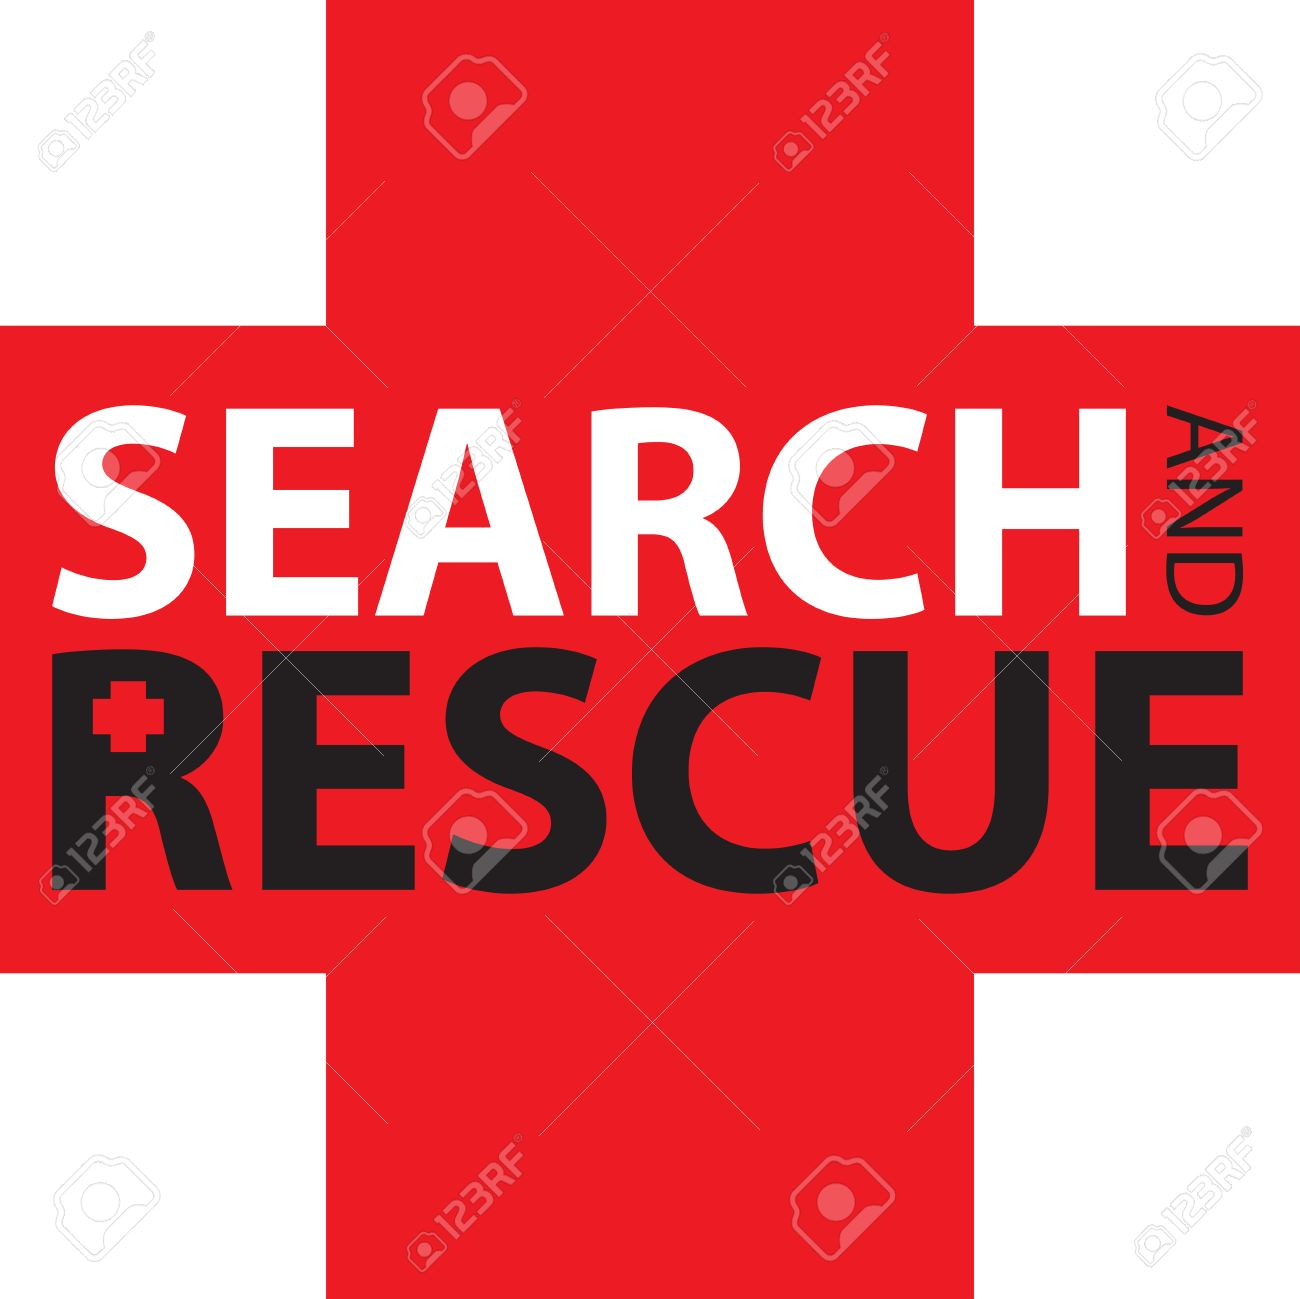 search and rescue is the search for and provision of aid to people